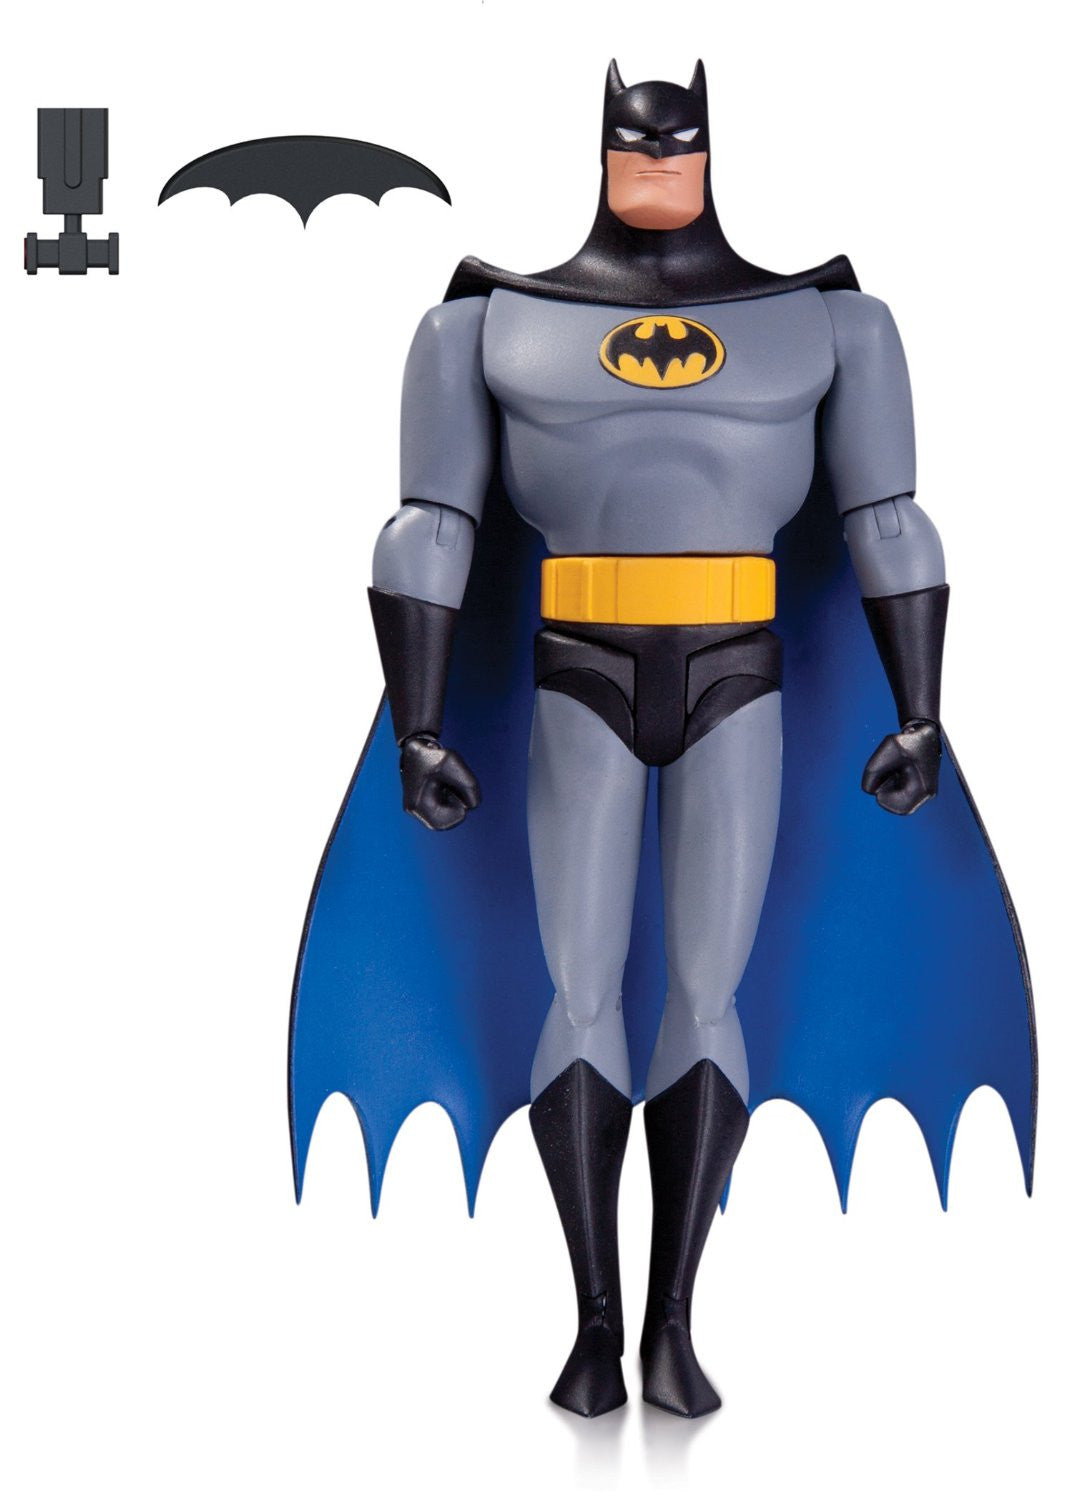 Batman the Animated Series - OddGifts.com